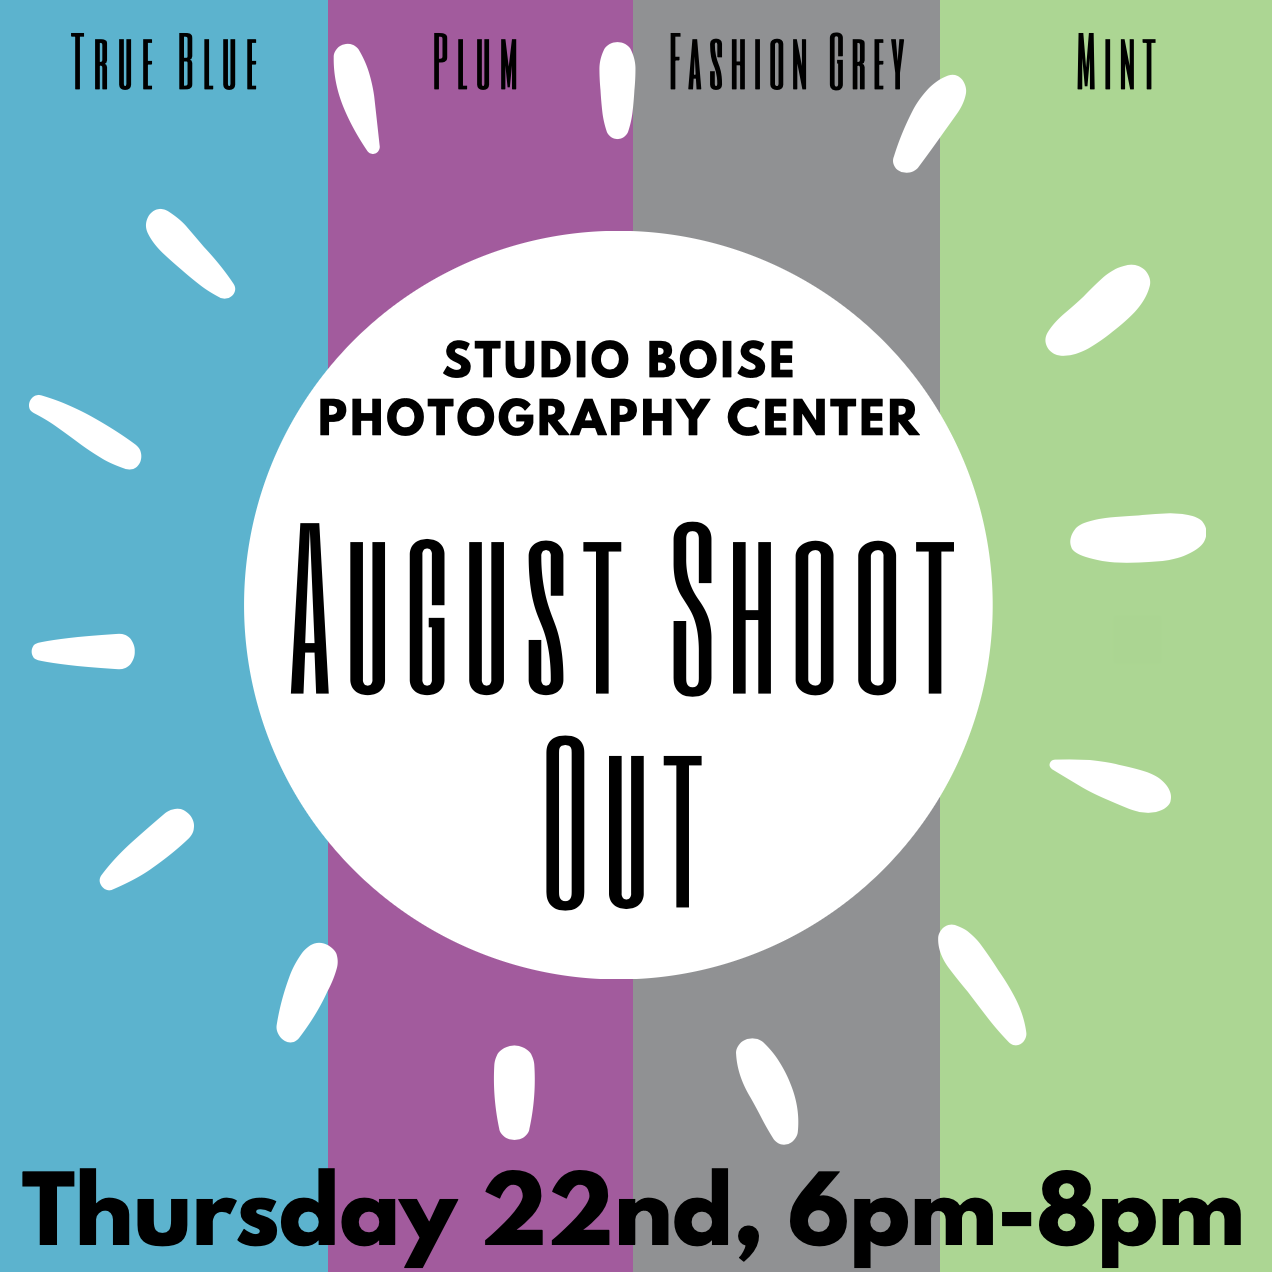 Studio Boise Photography Center August Shoot Out